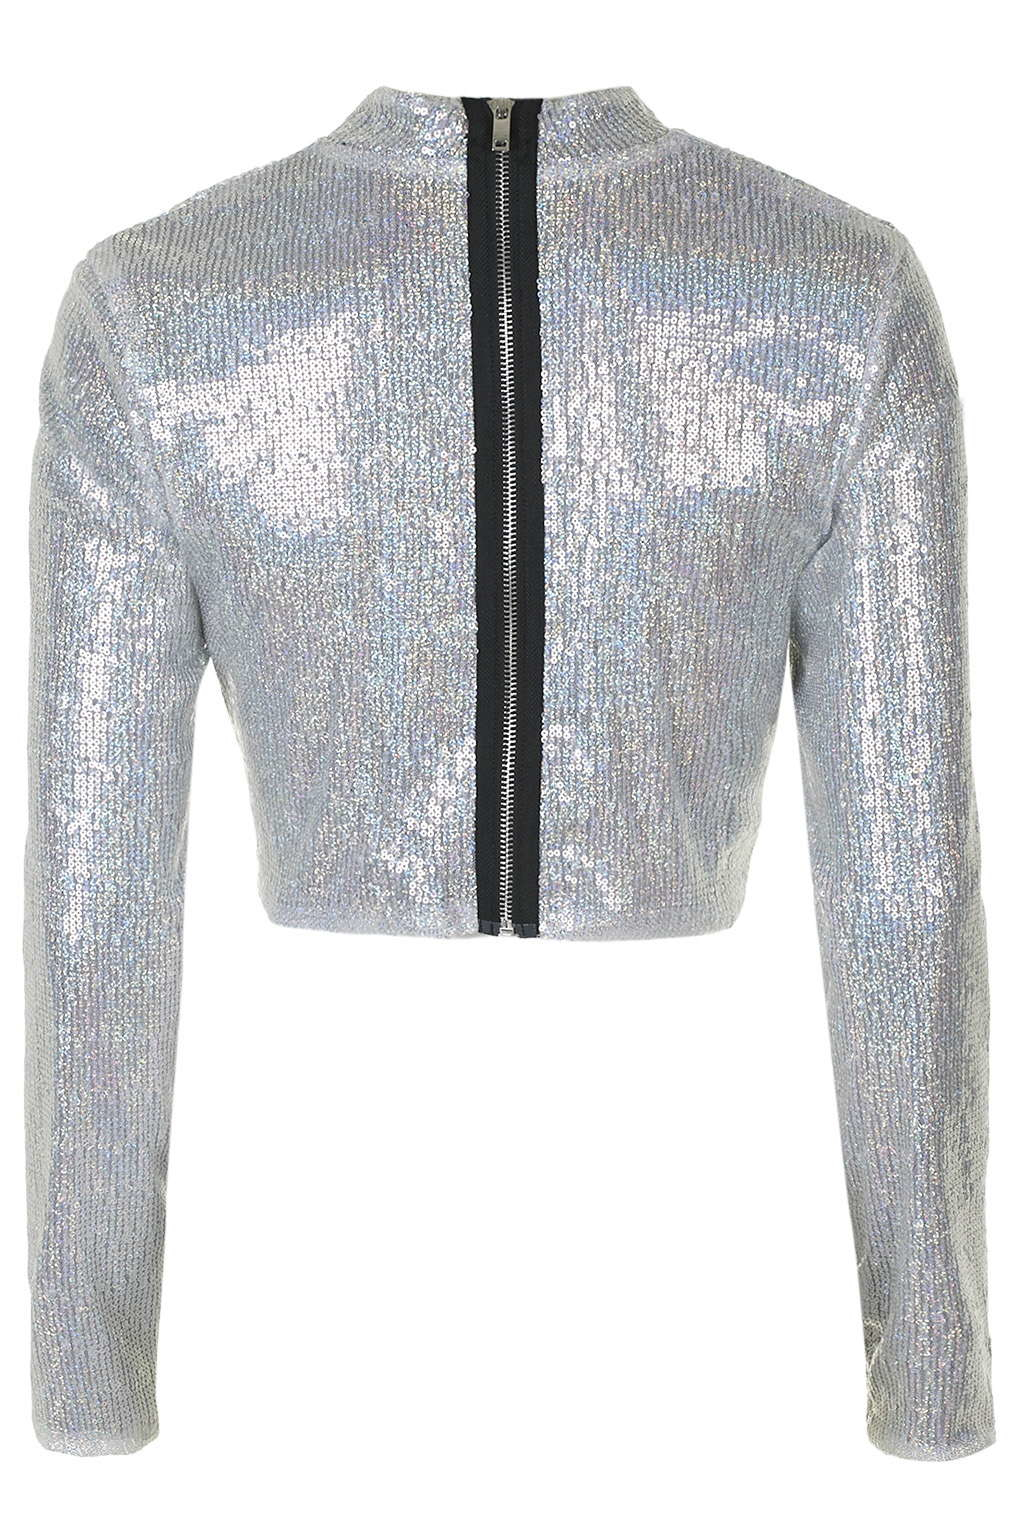 topshop silver sequin long sleeve crop top by jaded london in metallic lyst. Black Bedroom Furniture Sets. Home Design Ideas